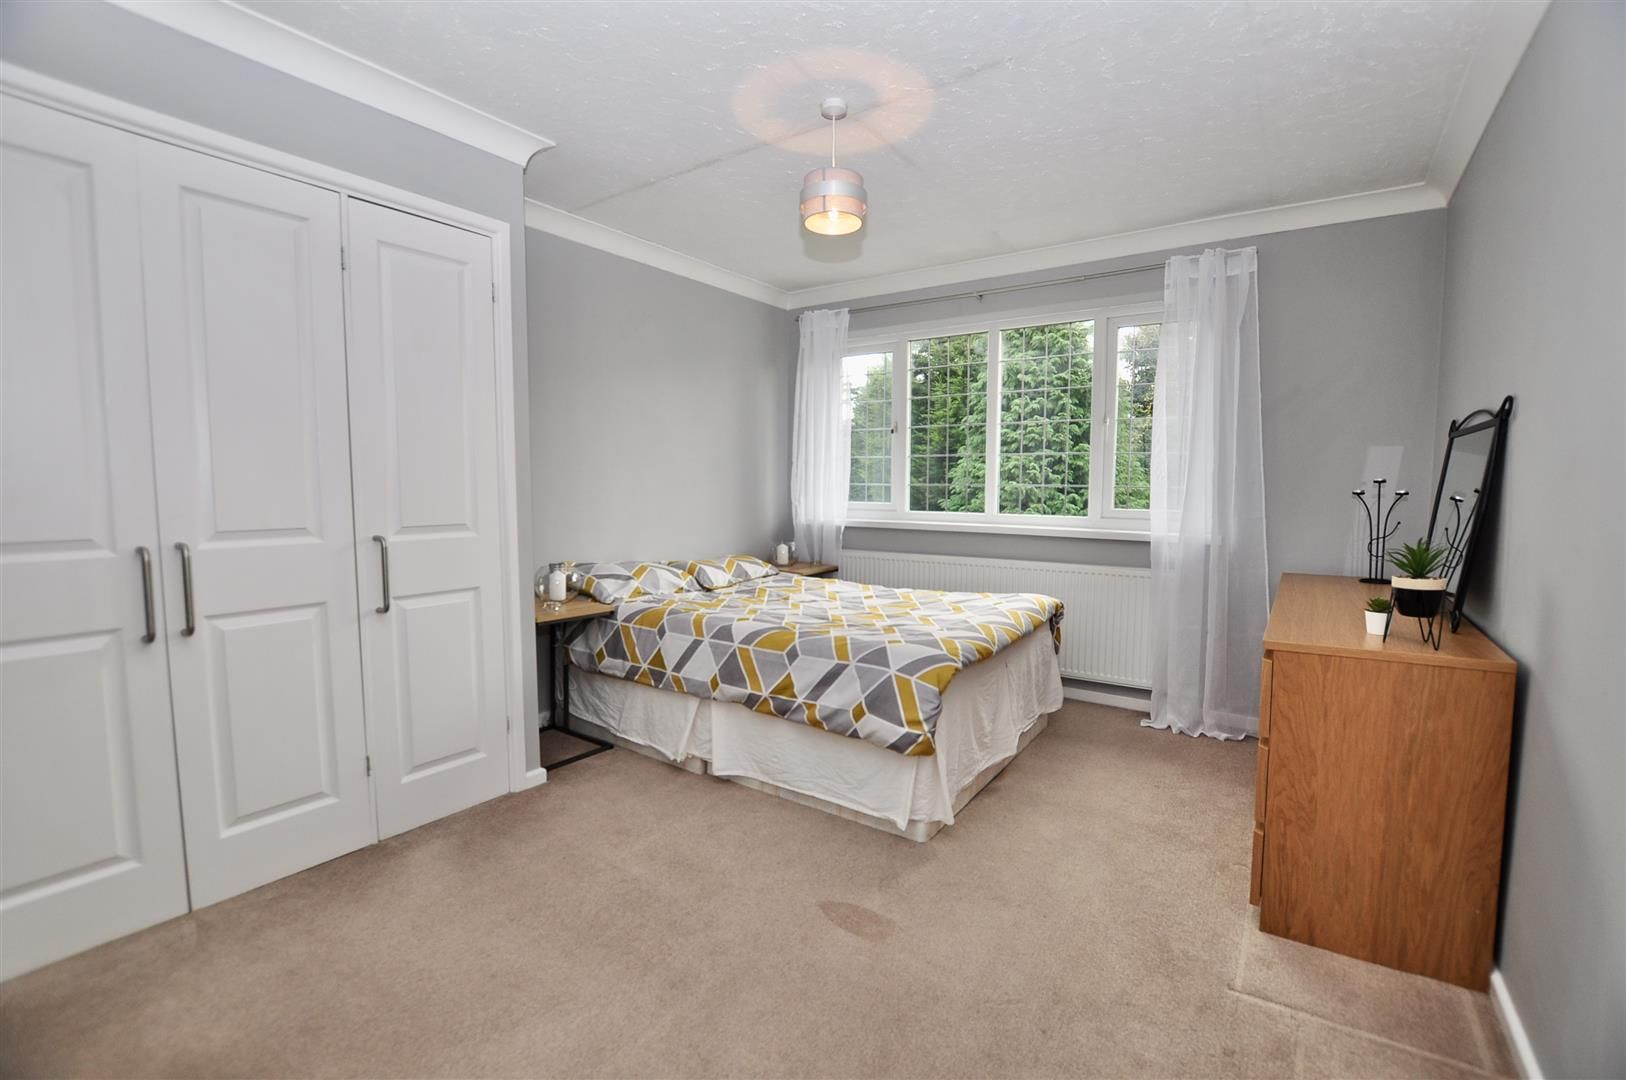 4 bed house for sale in Hagley 21